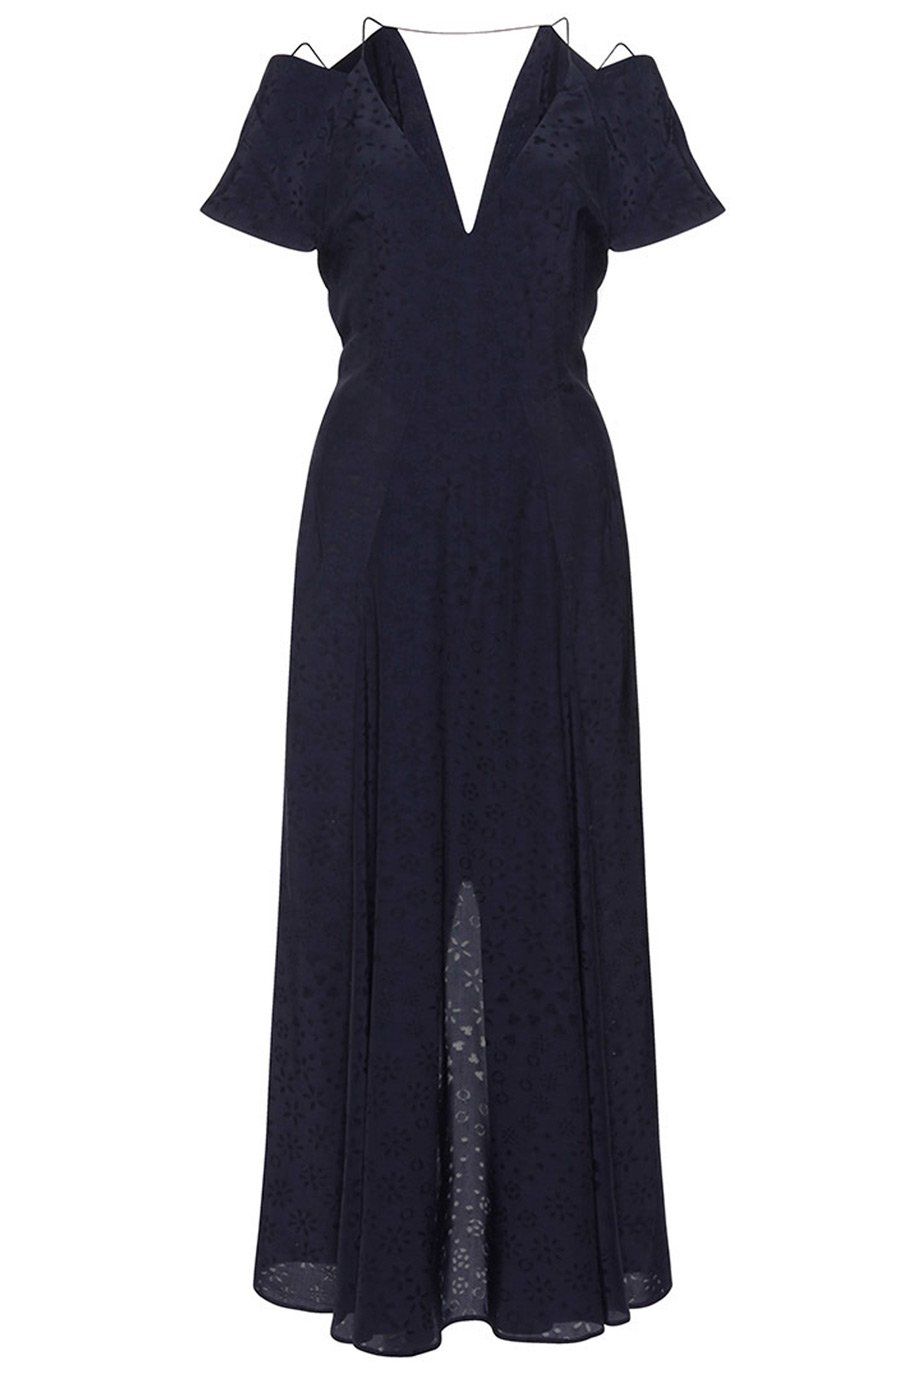 Roland Mouret Navy Jacquard Parry Cold Shoulder Midi Dress / Sz 6